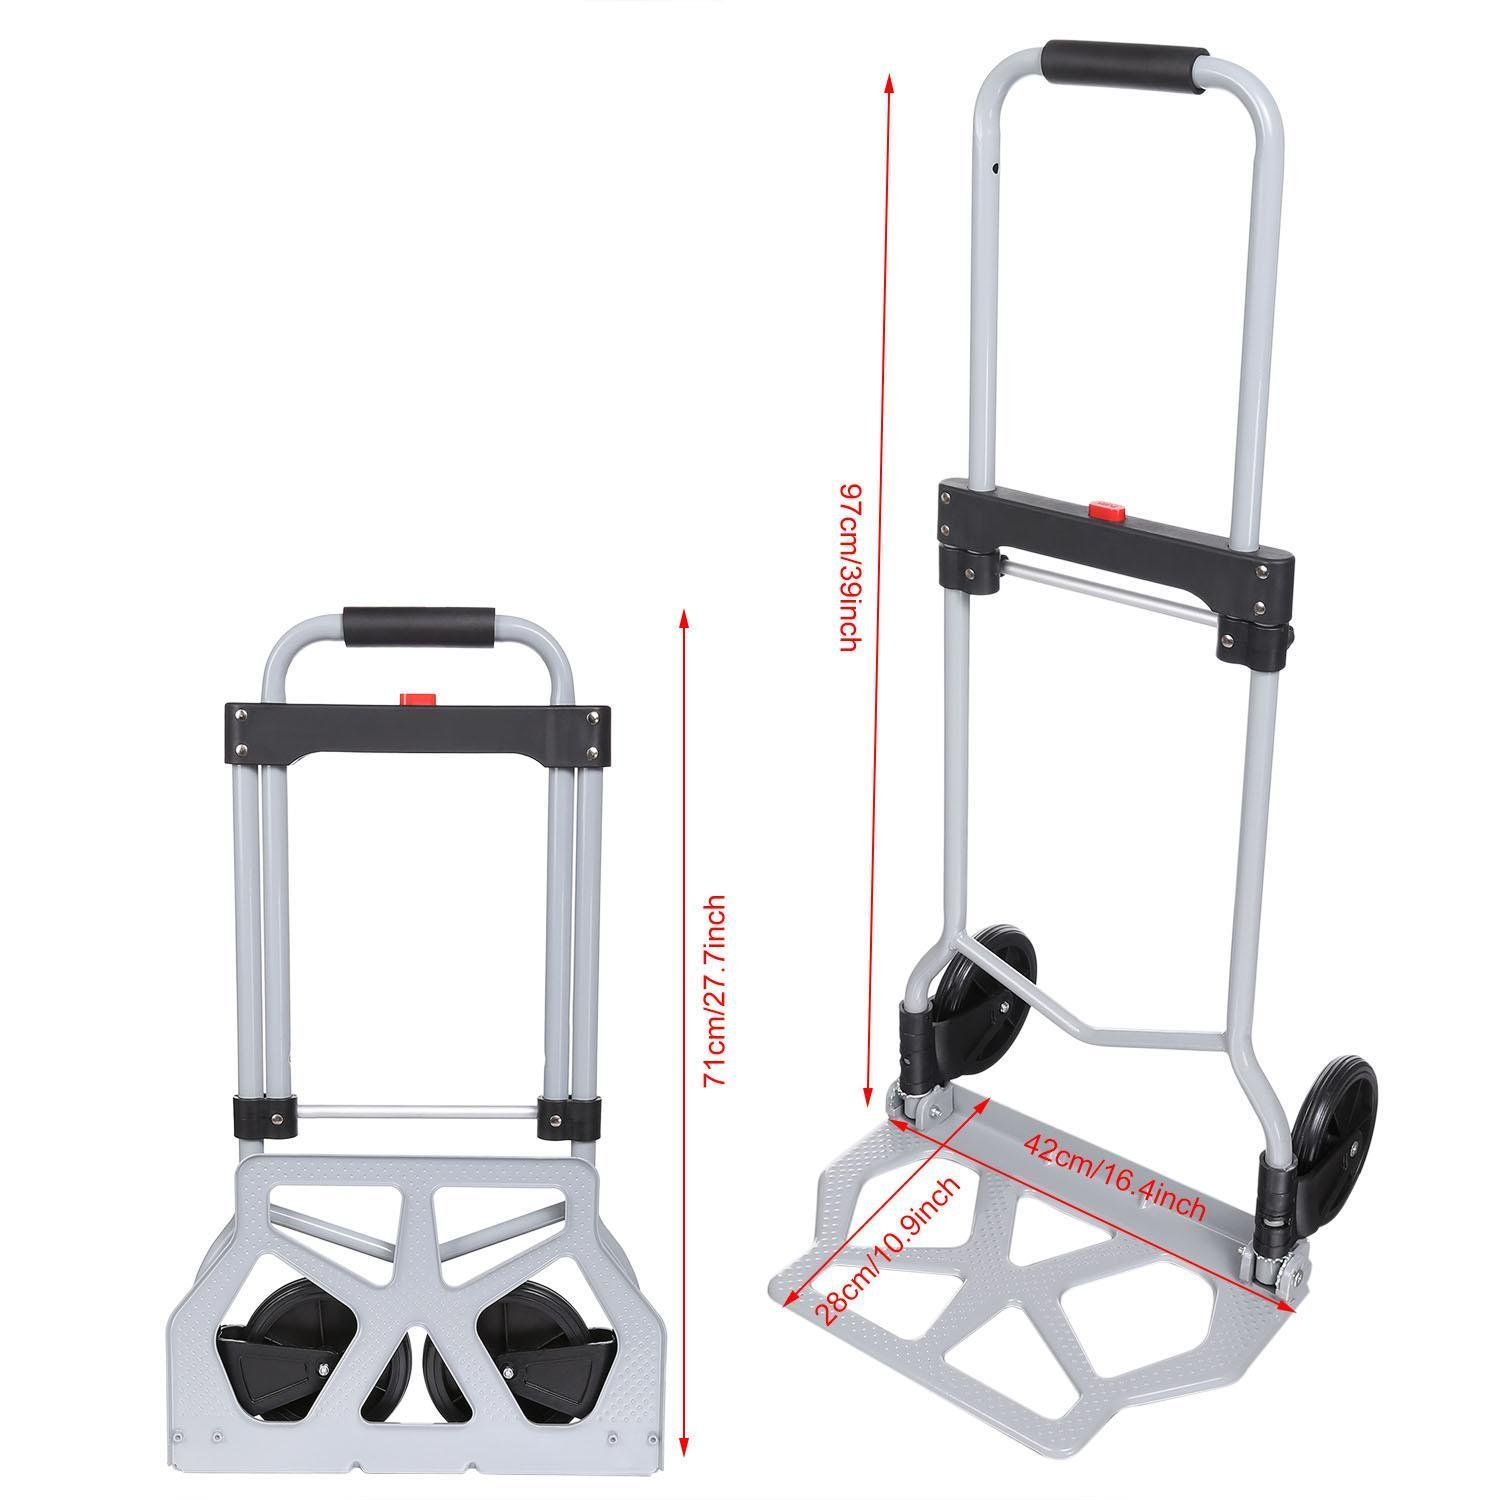 Folding Hand Truck/Assisted Hand Truck/Cart 220lbs Lightweight Portable Fold UpDolly Foldable Wheelsfor Luggage, Personal, Travel, Auto, Moving and Office Use